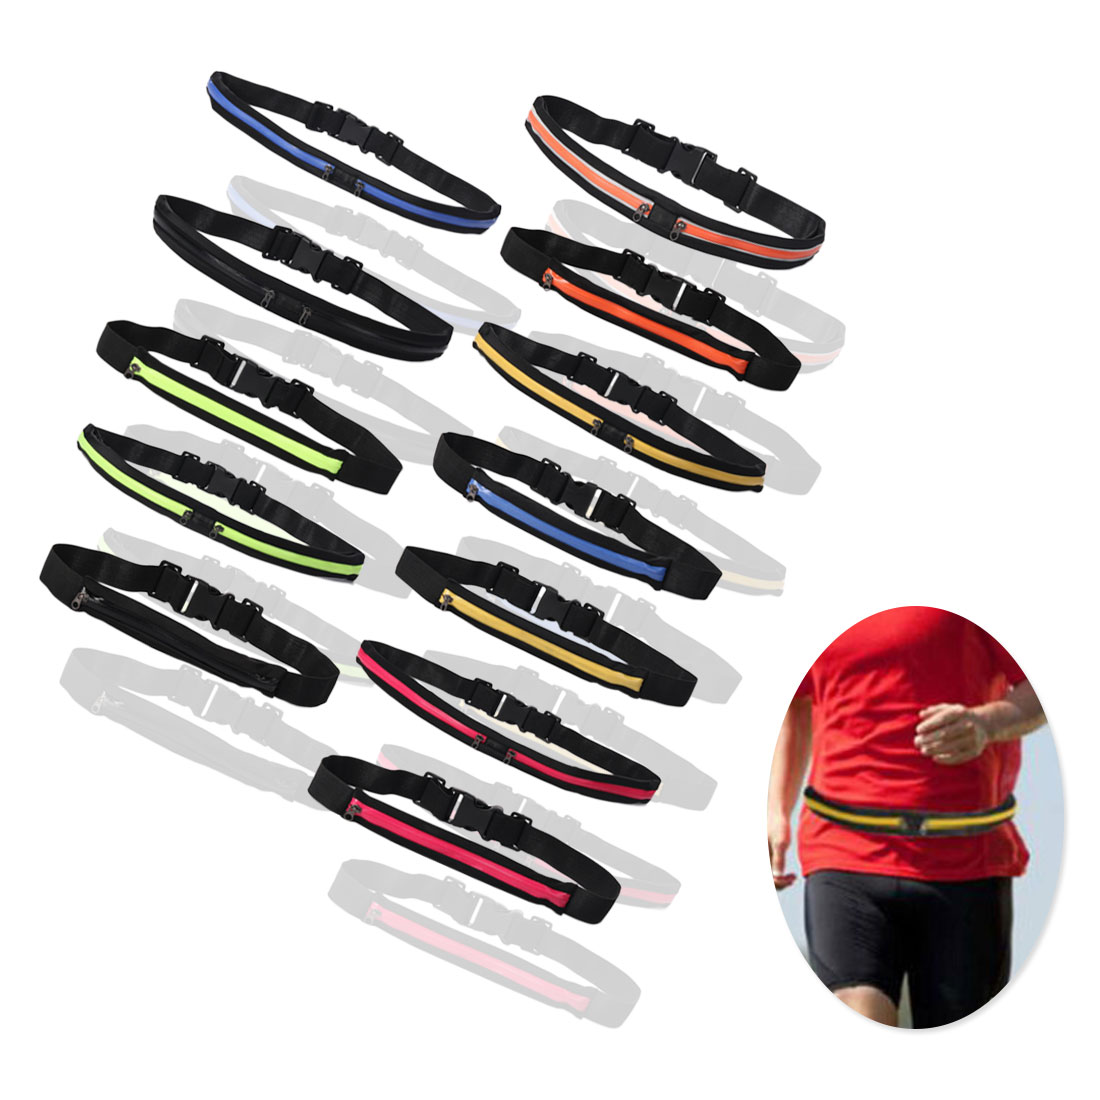 Sports Bag Waist Bag Pouch Running Sports Pockets Invisible Personal Phone Single Bag Double Bag Activities To Send Gifts